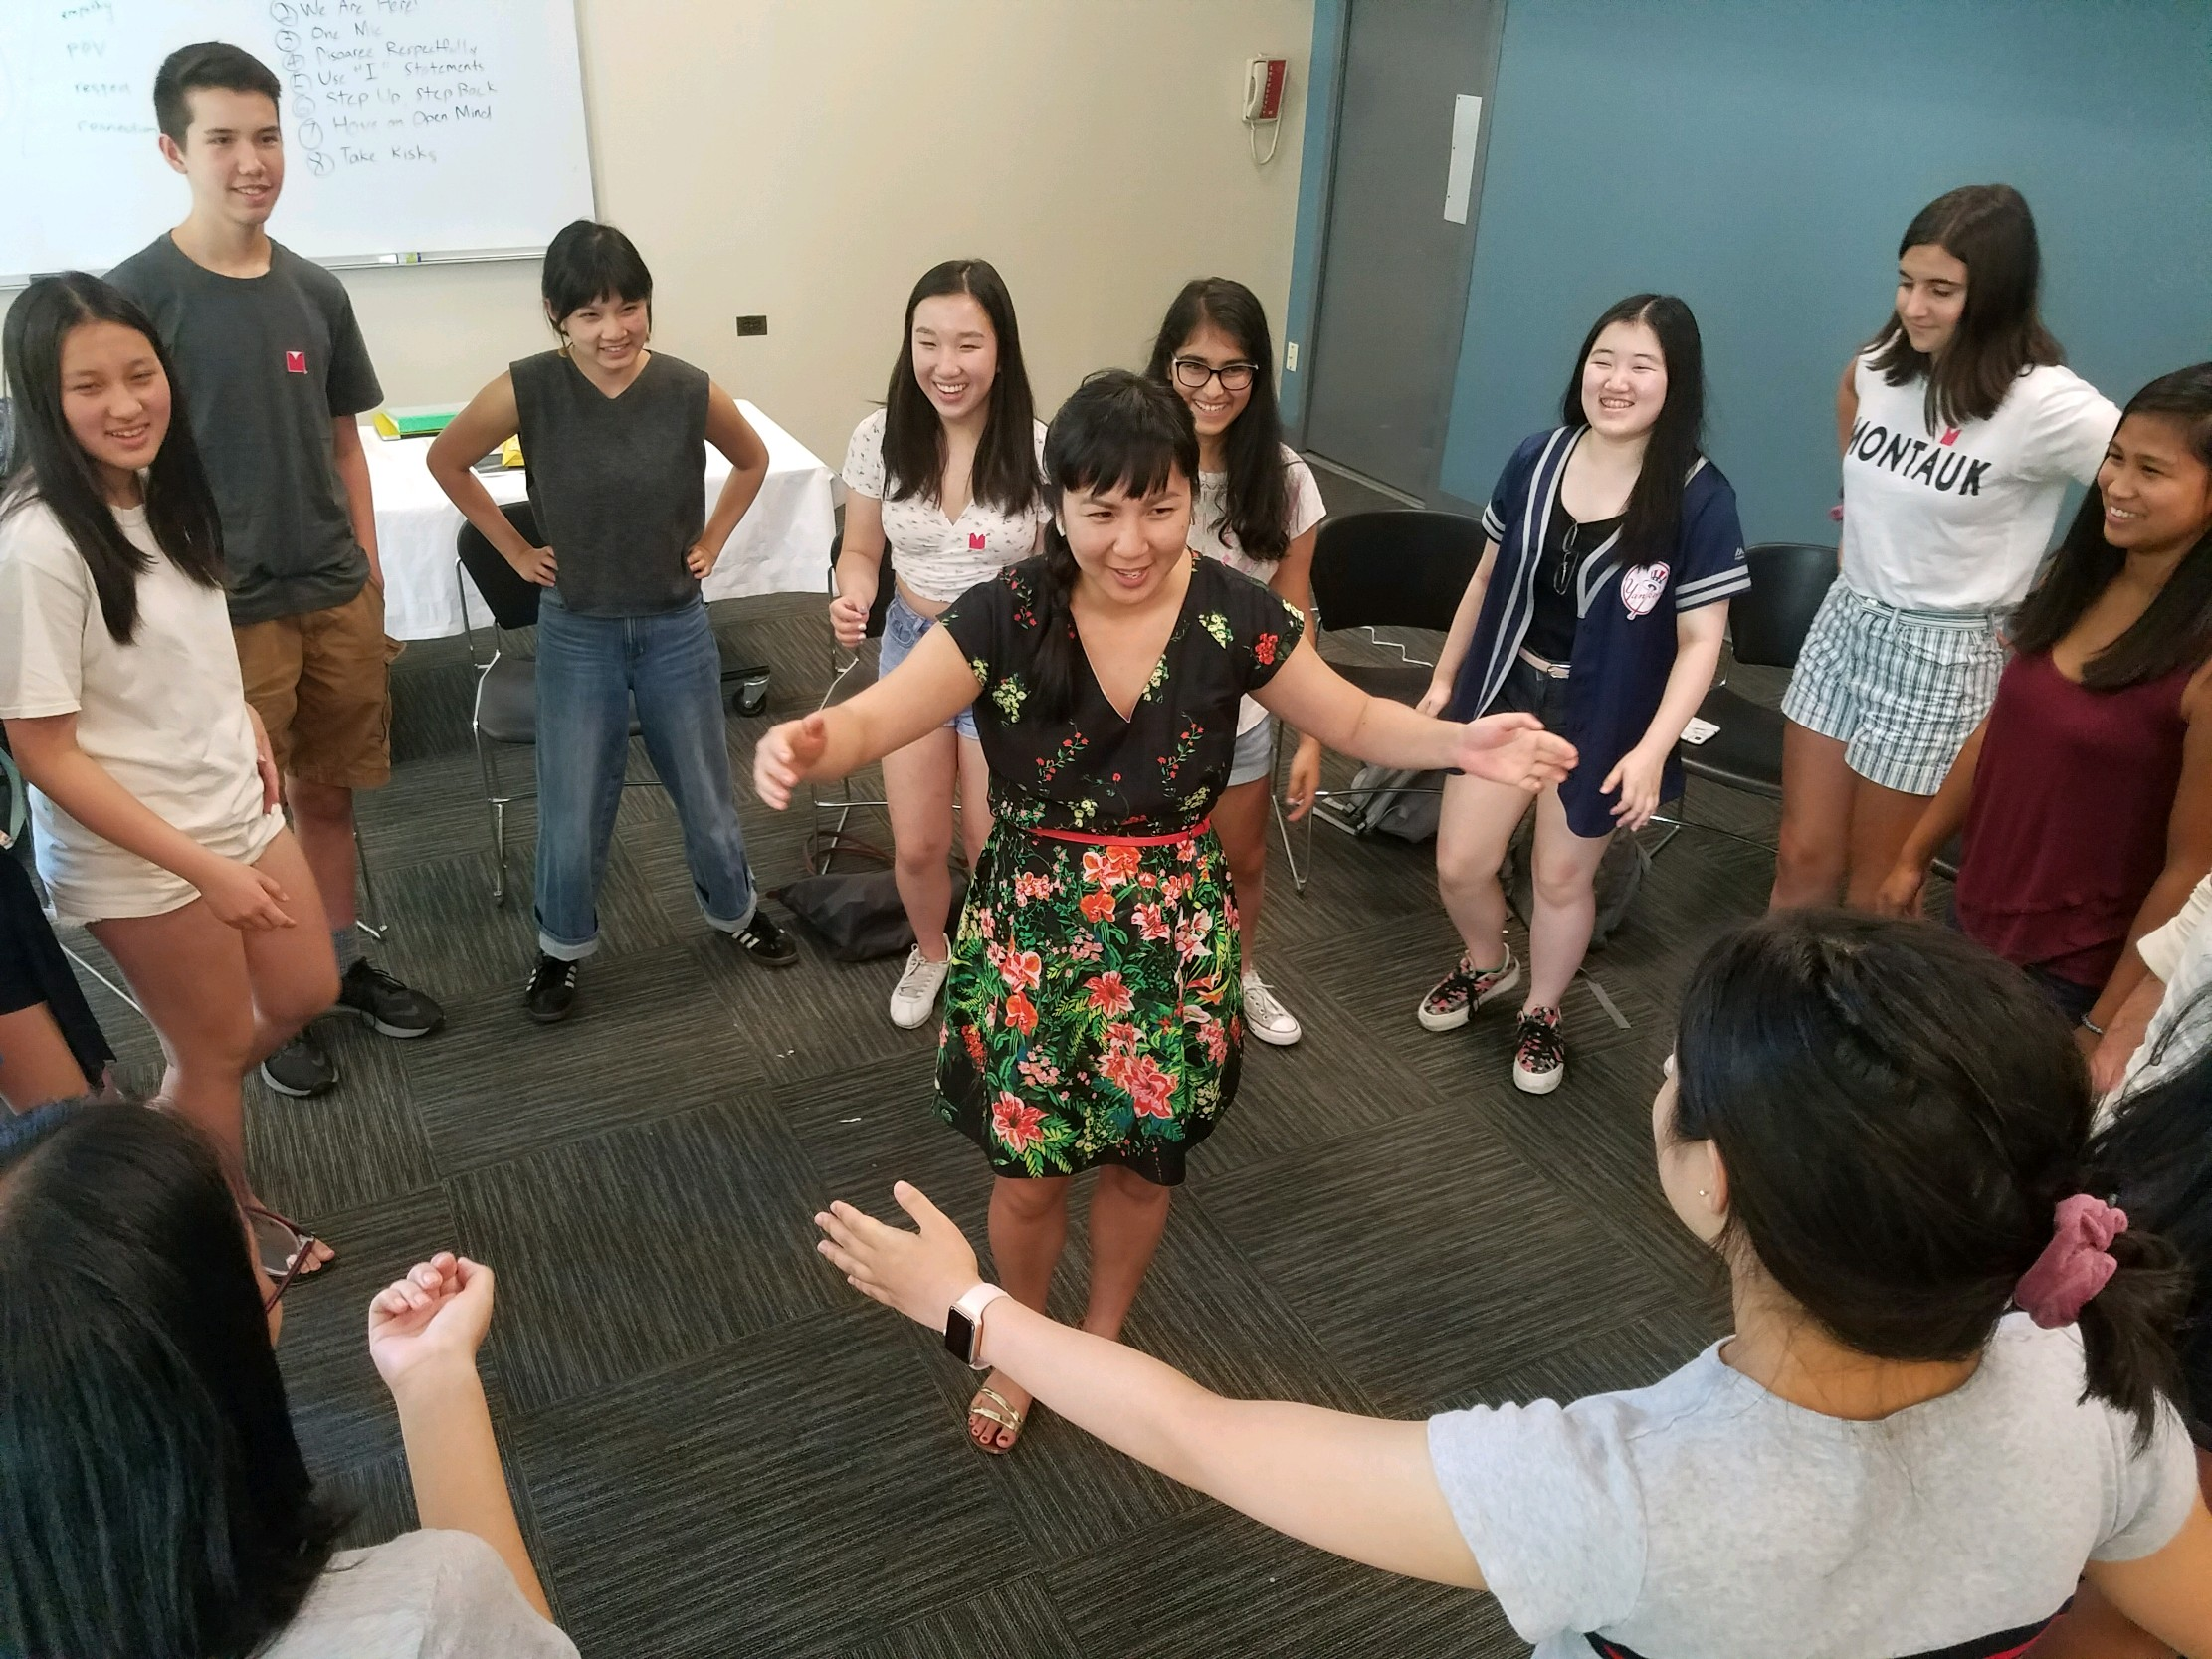 Executive Director Cathy Linh Che gathers everyone for a final group hug!